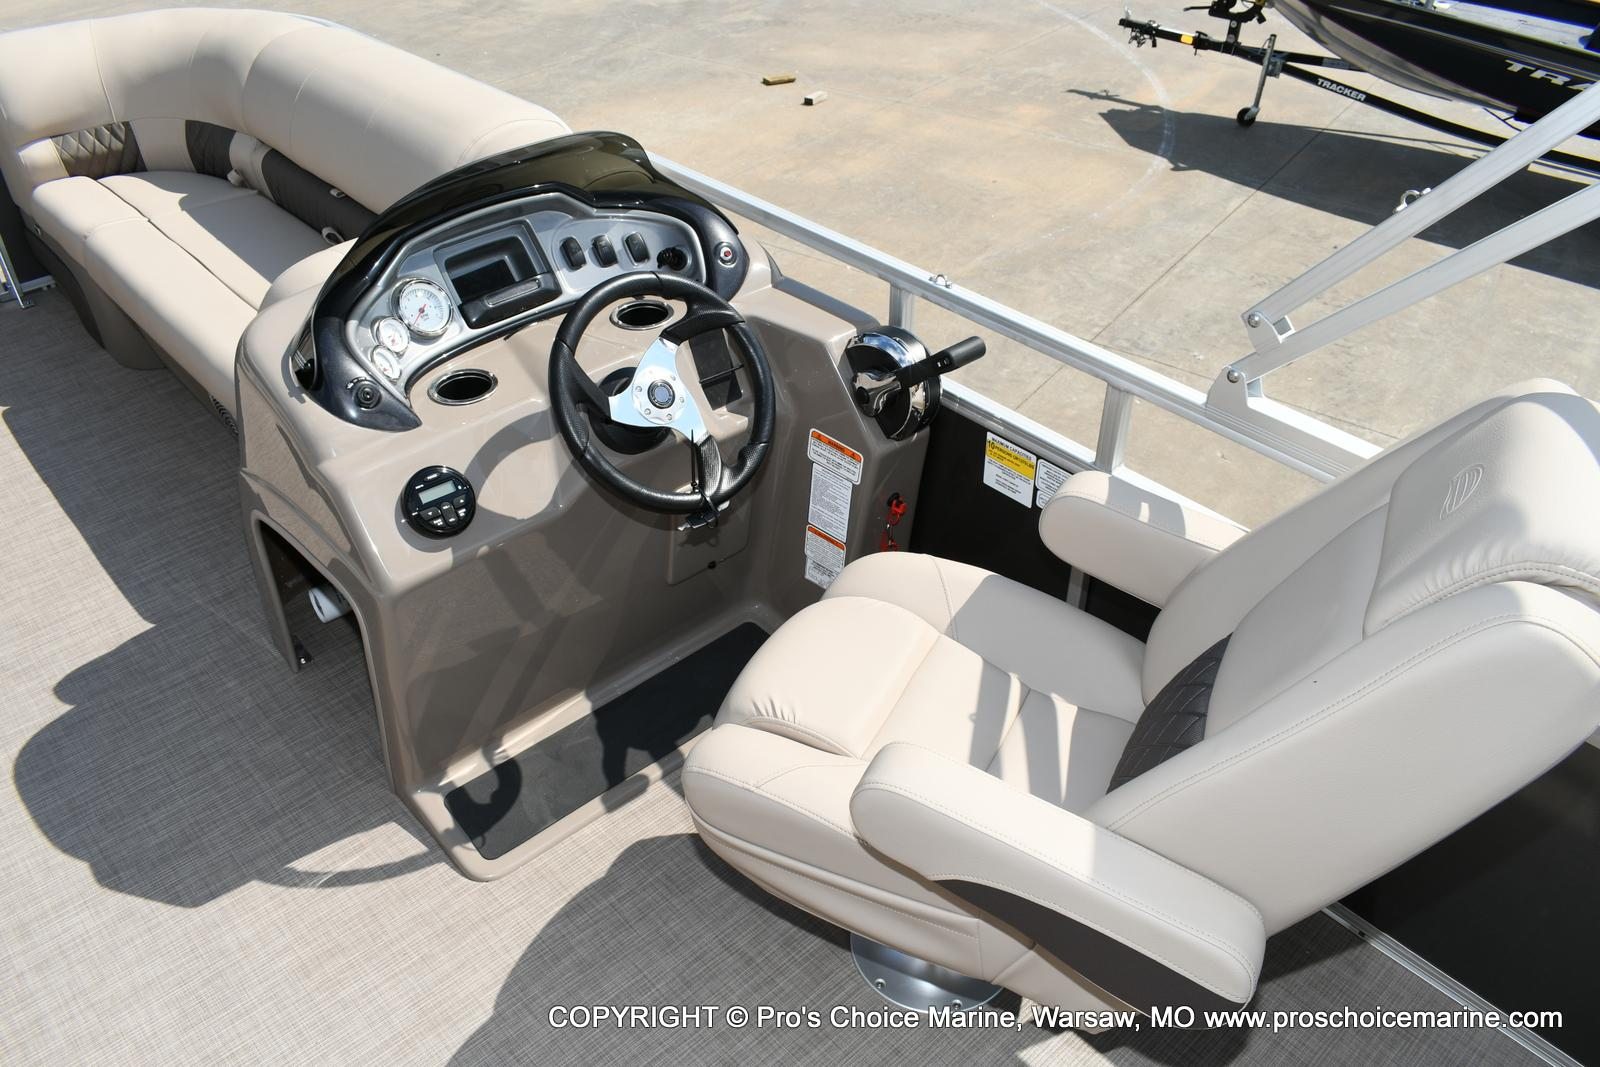 2020 Sun Tracker boat for sale, model of the boat is Party Barge 20 DLX & Image # 35 of 50